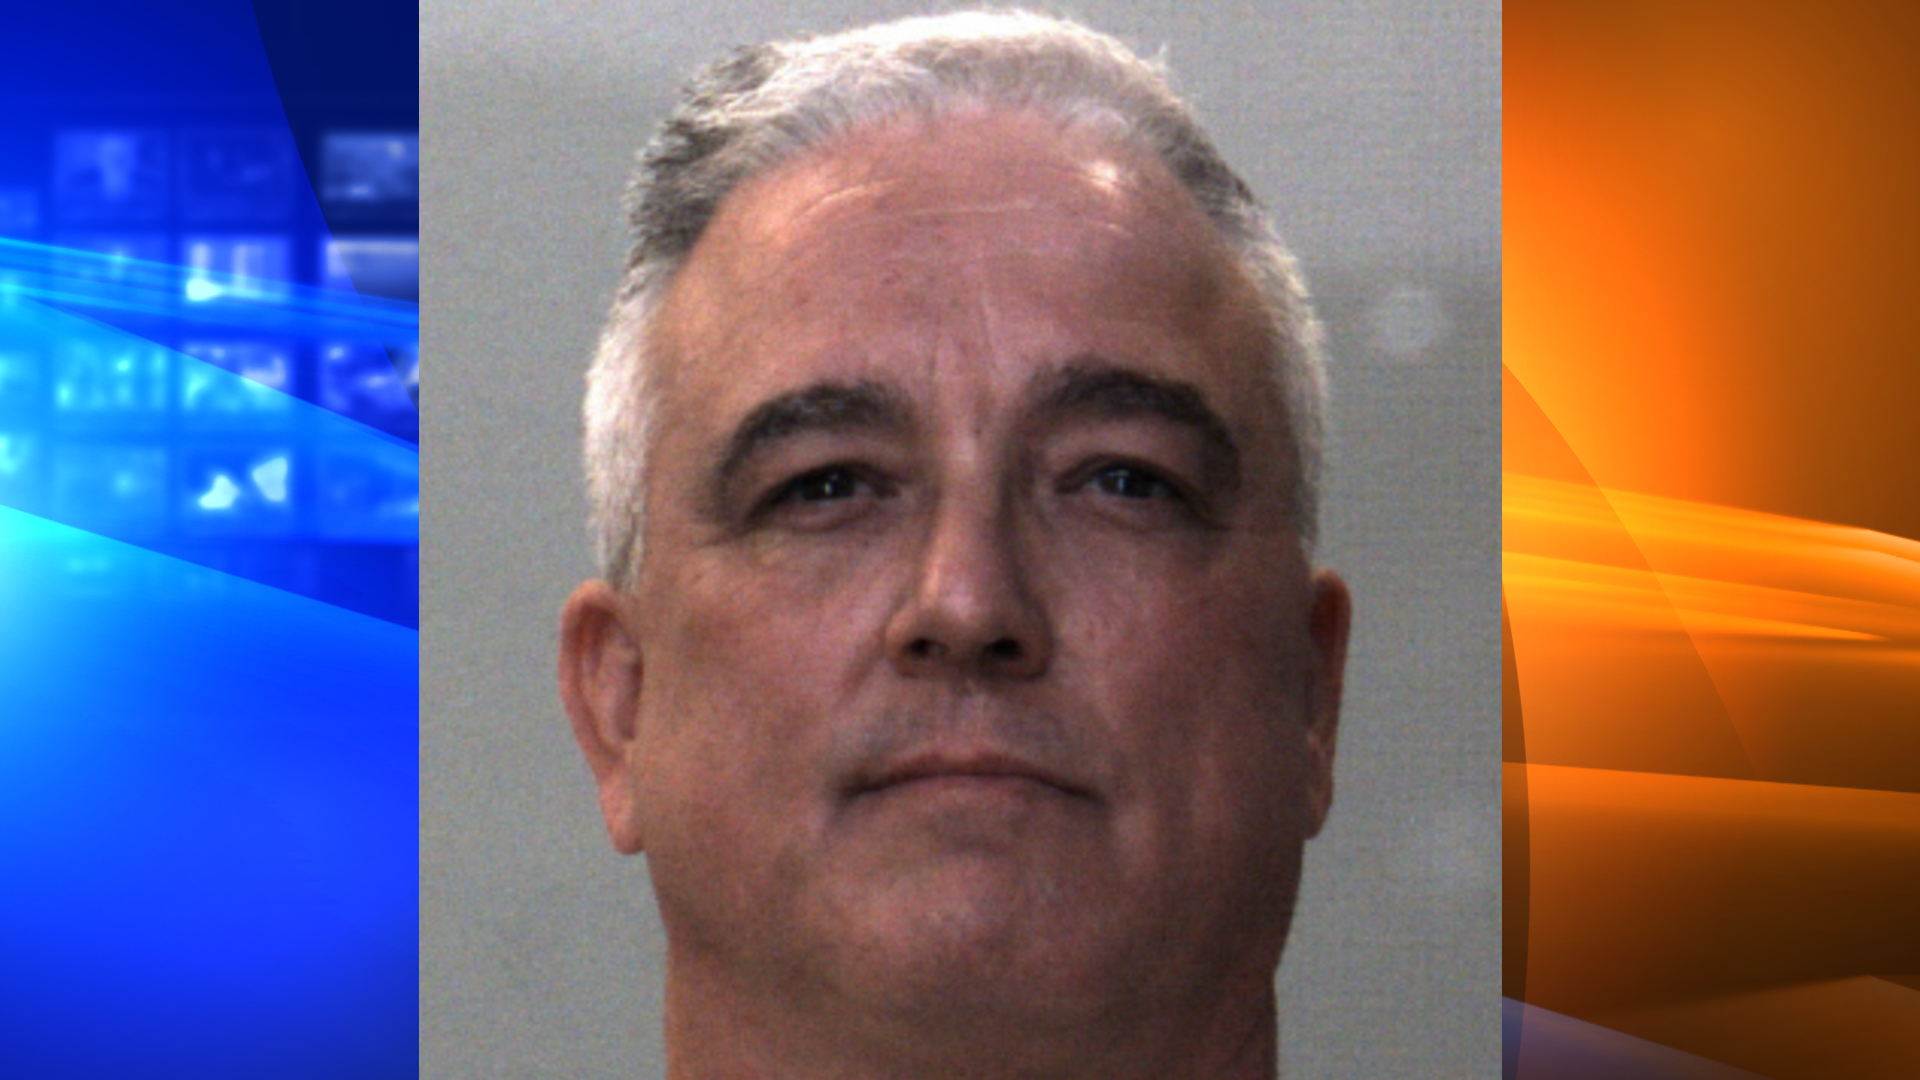 Former sheriff's deputy Jeremie Cox is seen in a booking photo released Sept. 17, 2021, by the San Bernardino County Sheriff's Department.